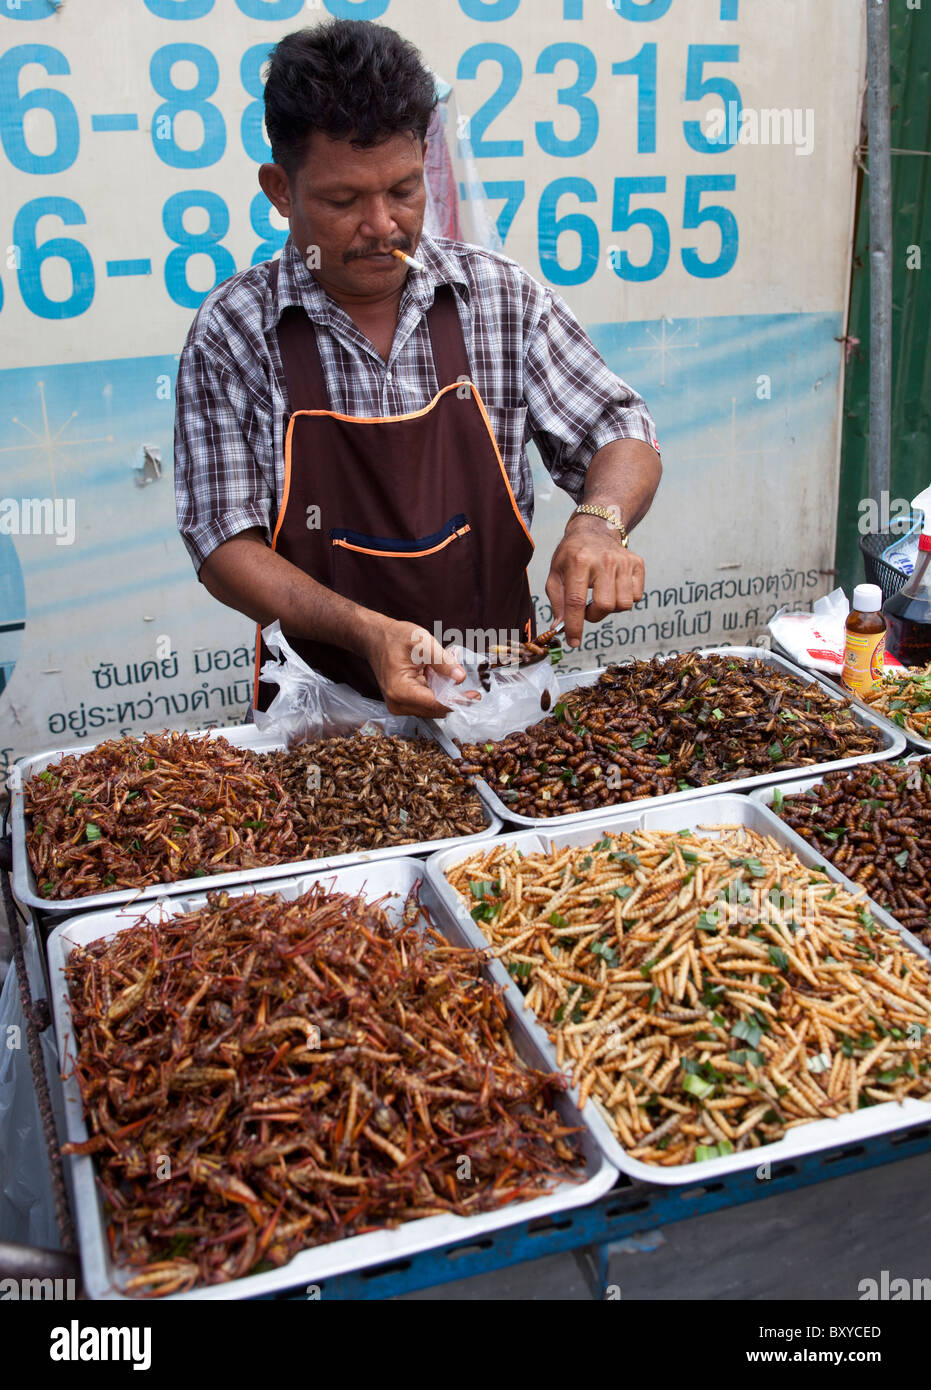 Insect food thailand stockfotos insect food thailand for Verkauf von mobeln